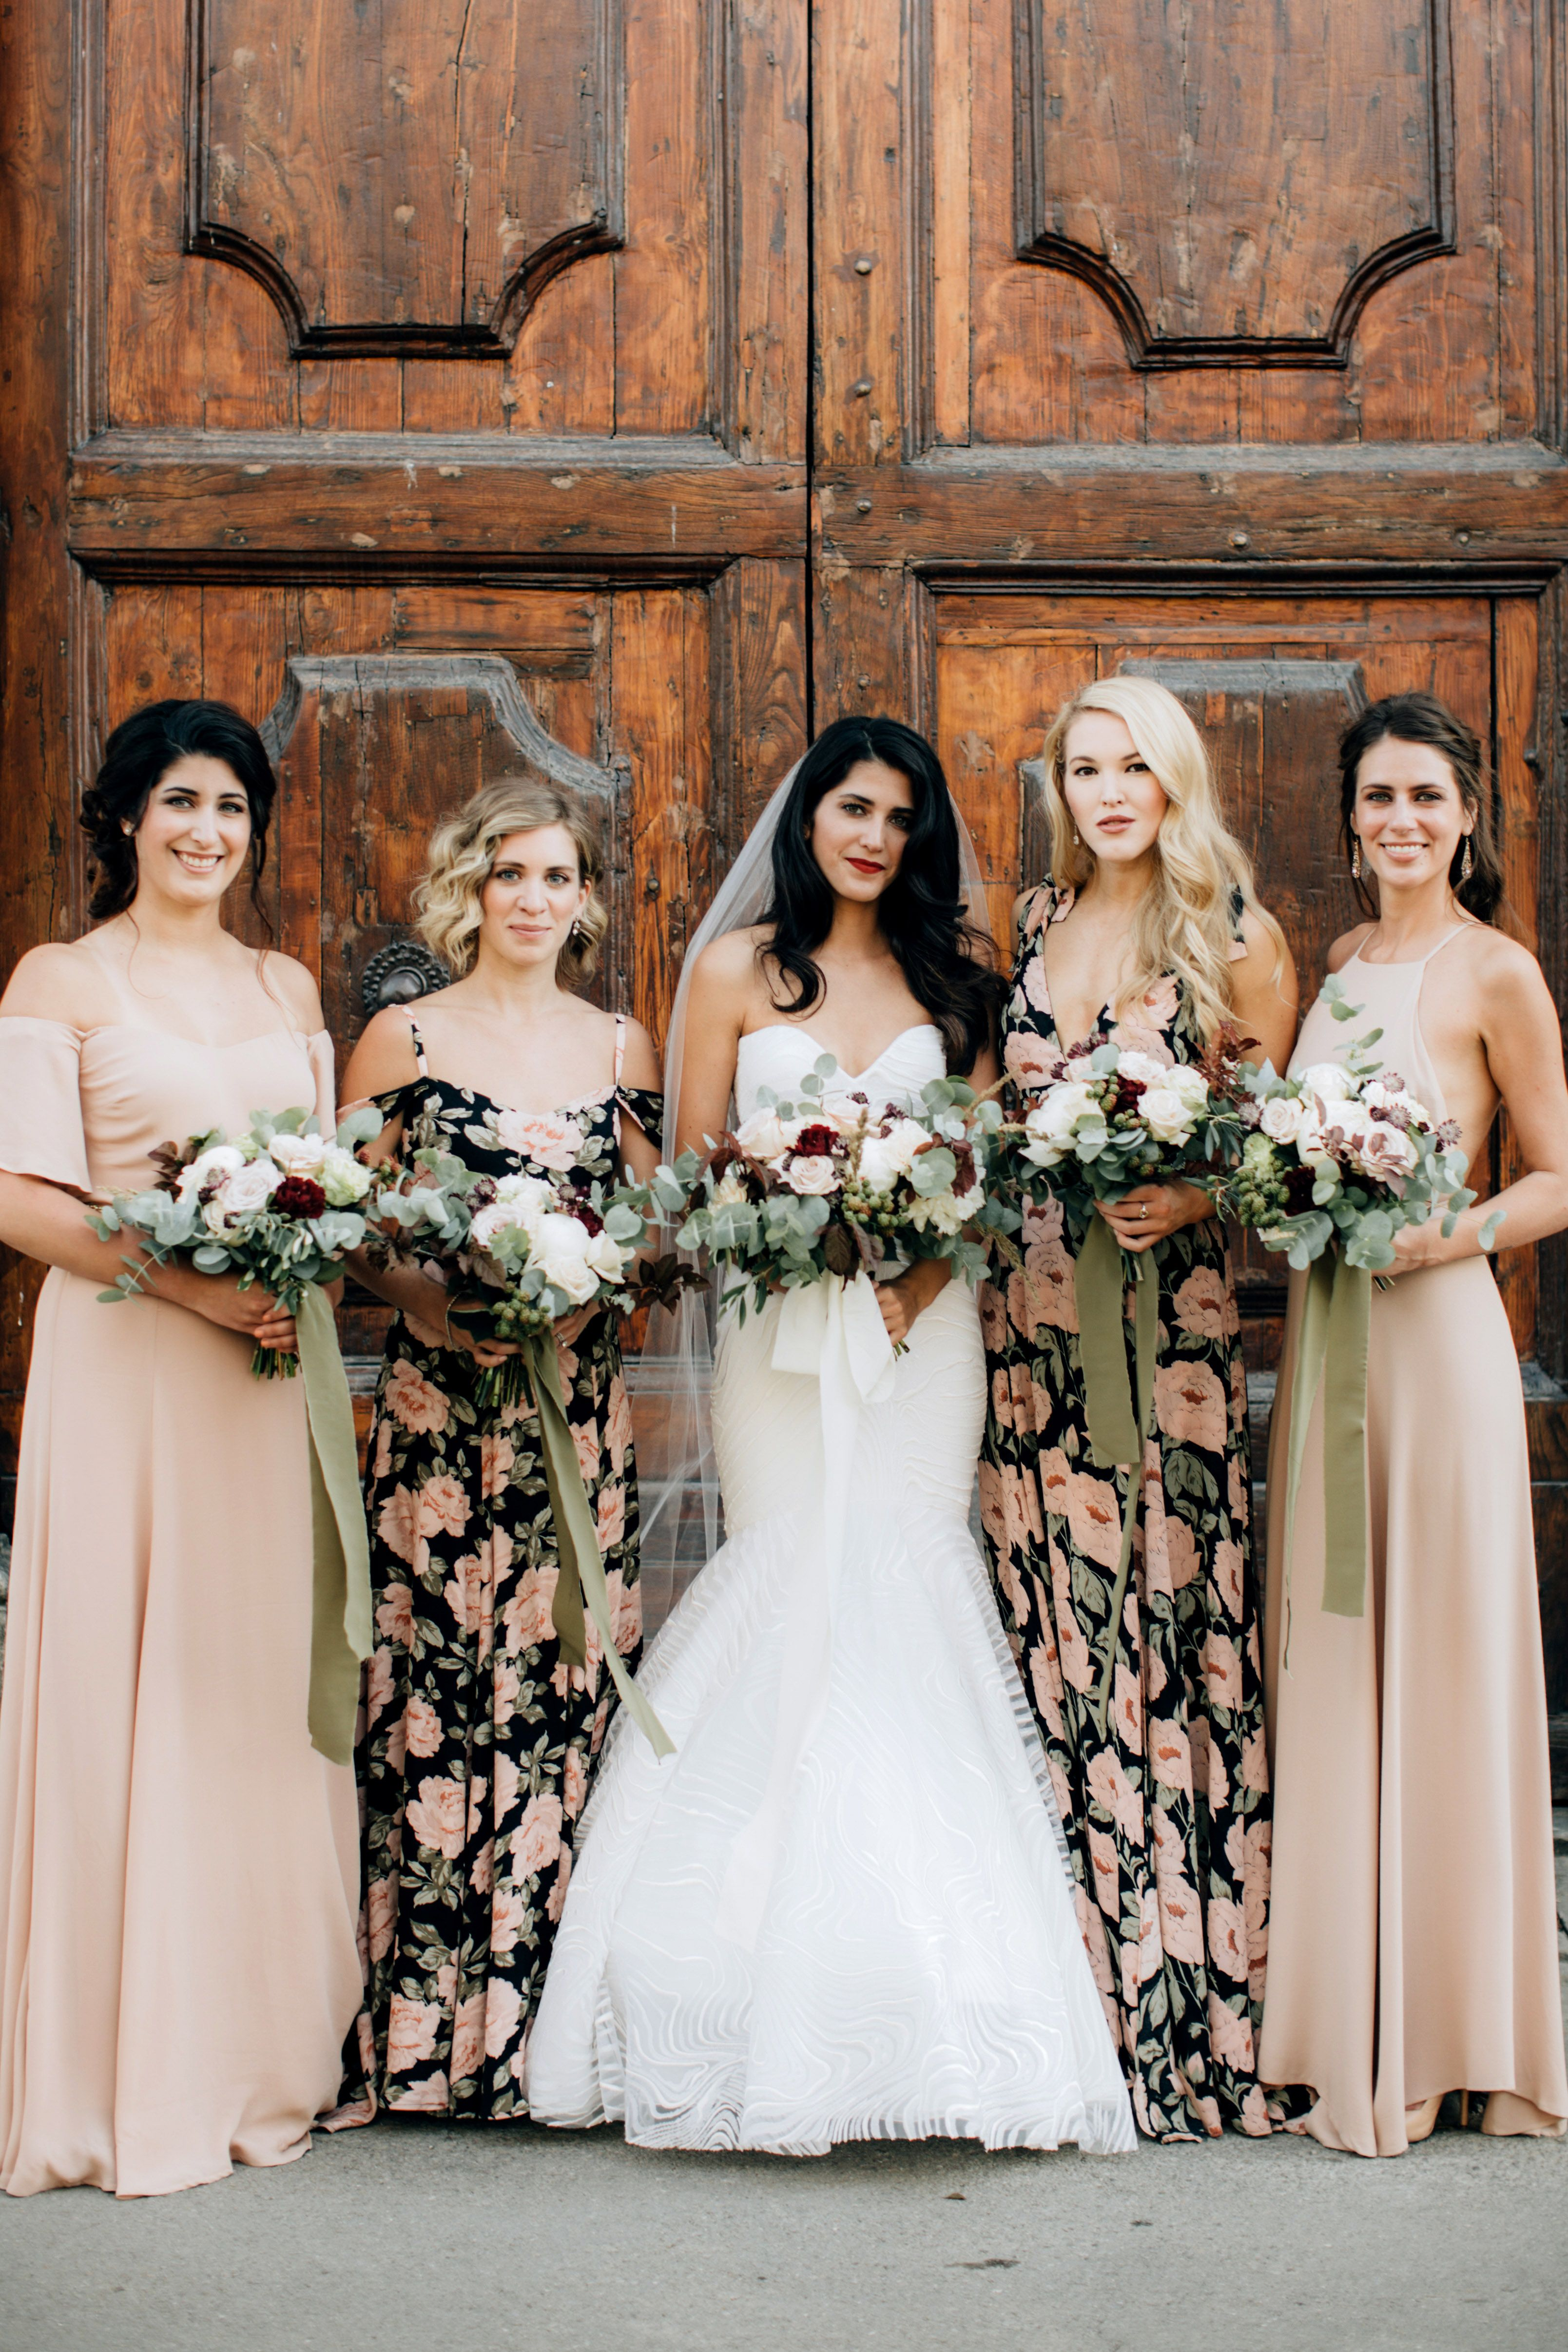 38 Looks That Prove Bridesmaids Dresses Can Be Chic Printed Bridesmaid Dresses Summer Wedding Dress Patterned Bridesmaid Dresses [ 4826 x 3217 Pixel ]